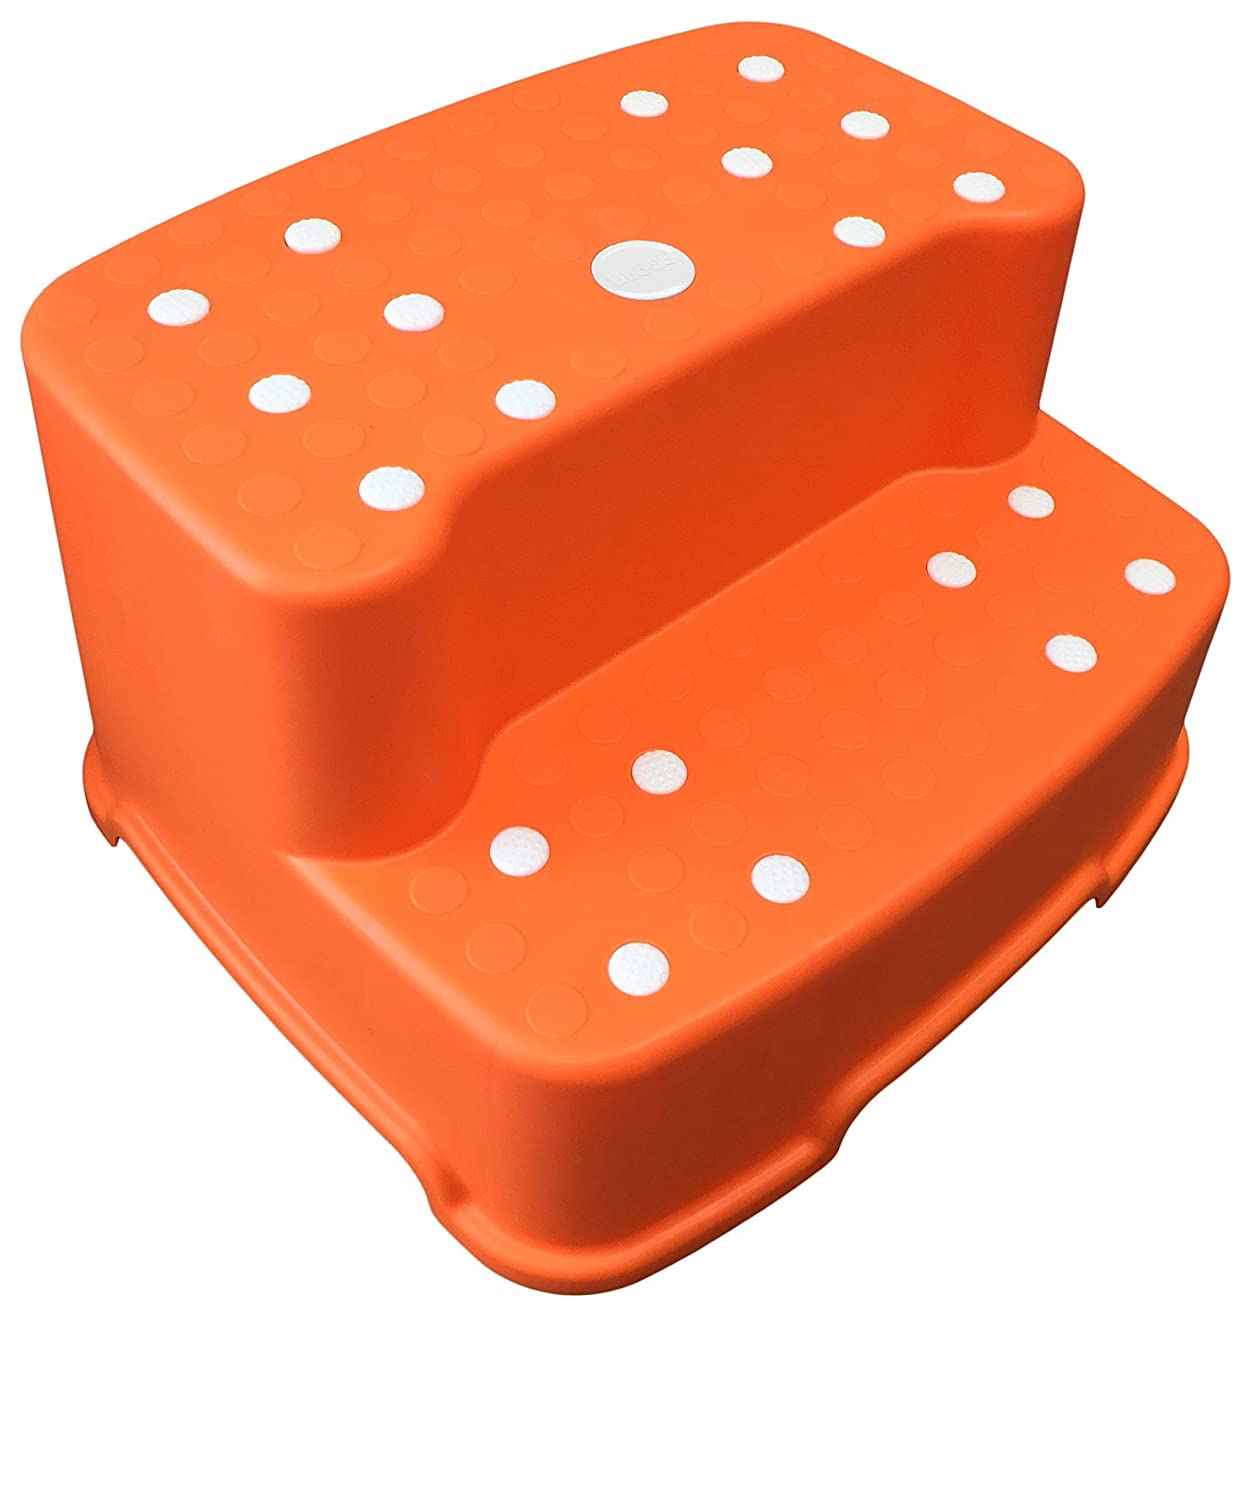 Tenby Living Extra-Wide, Extra-Tall Jumbo Step Stool with Removable Non-Slip Caps and Rubber Grips, Orange TBL-SS-O1